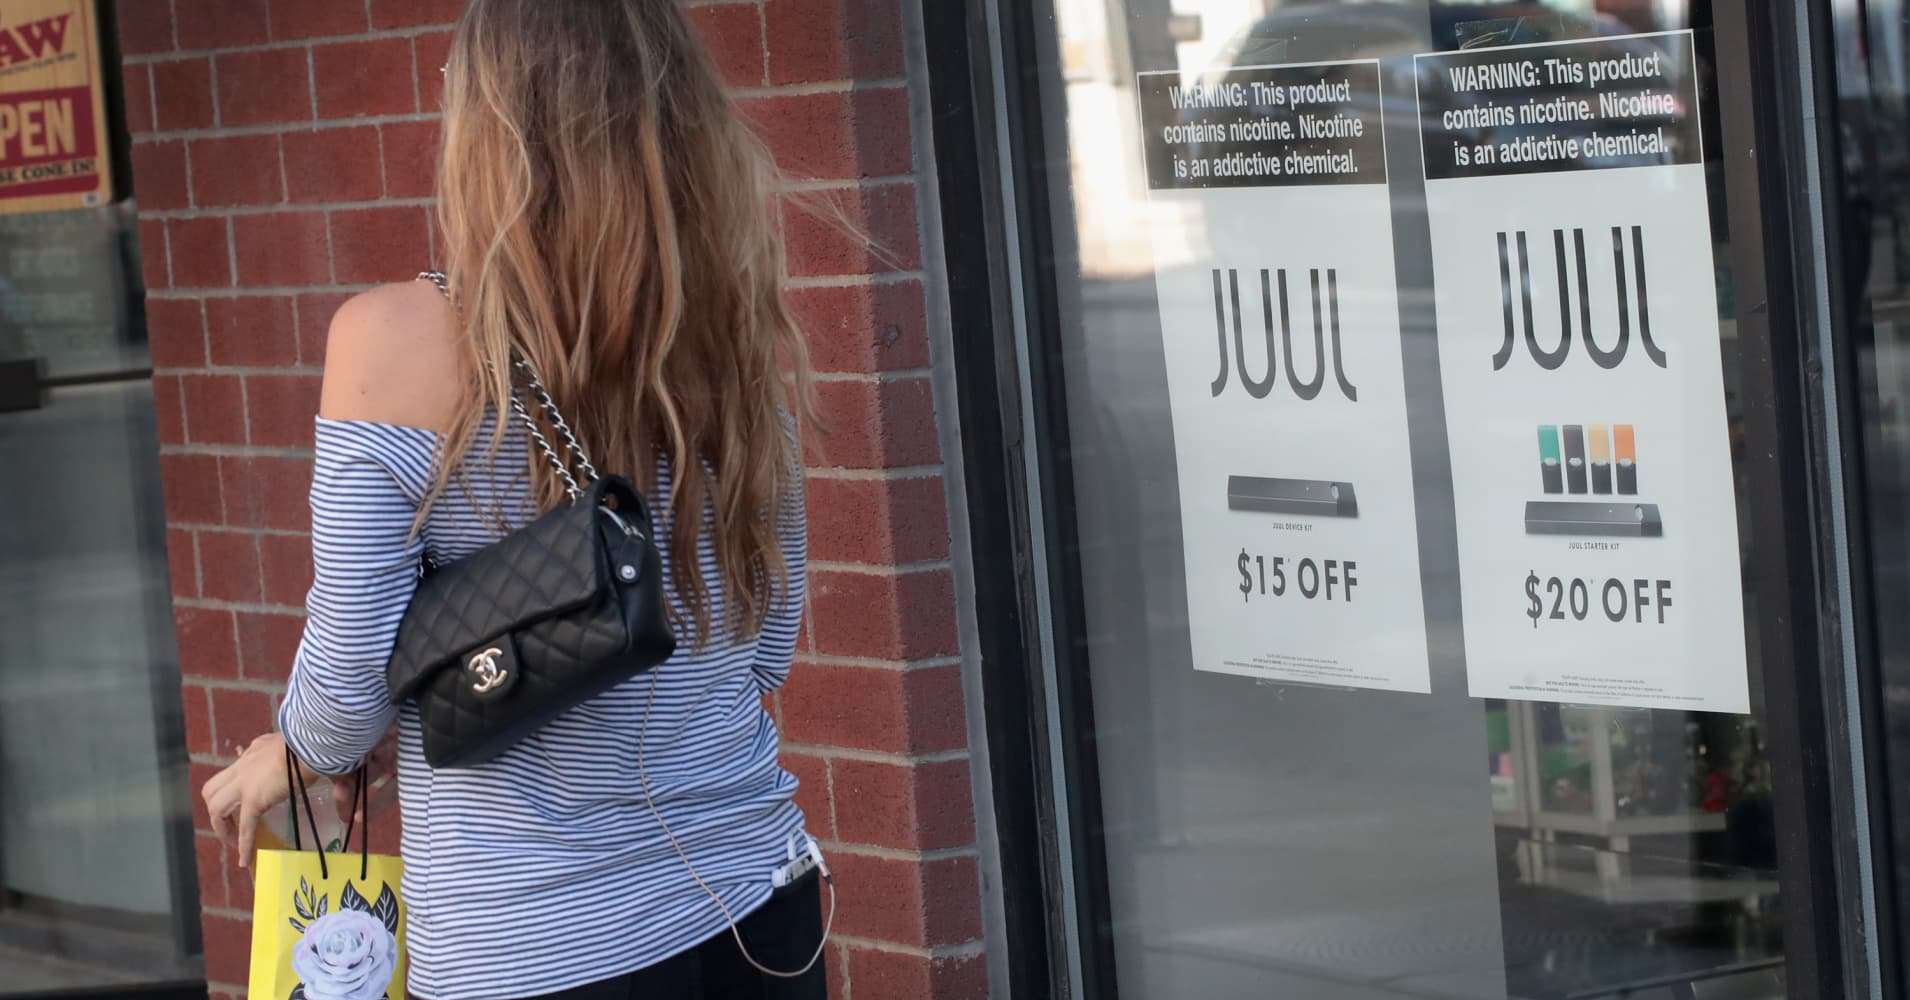 Juul e-cigarette maker boosts lobbying spending as FDA cracks down